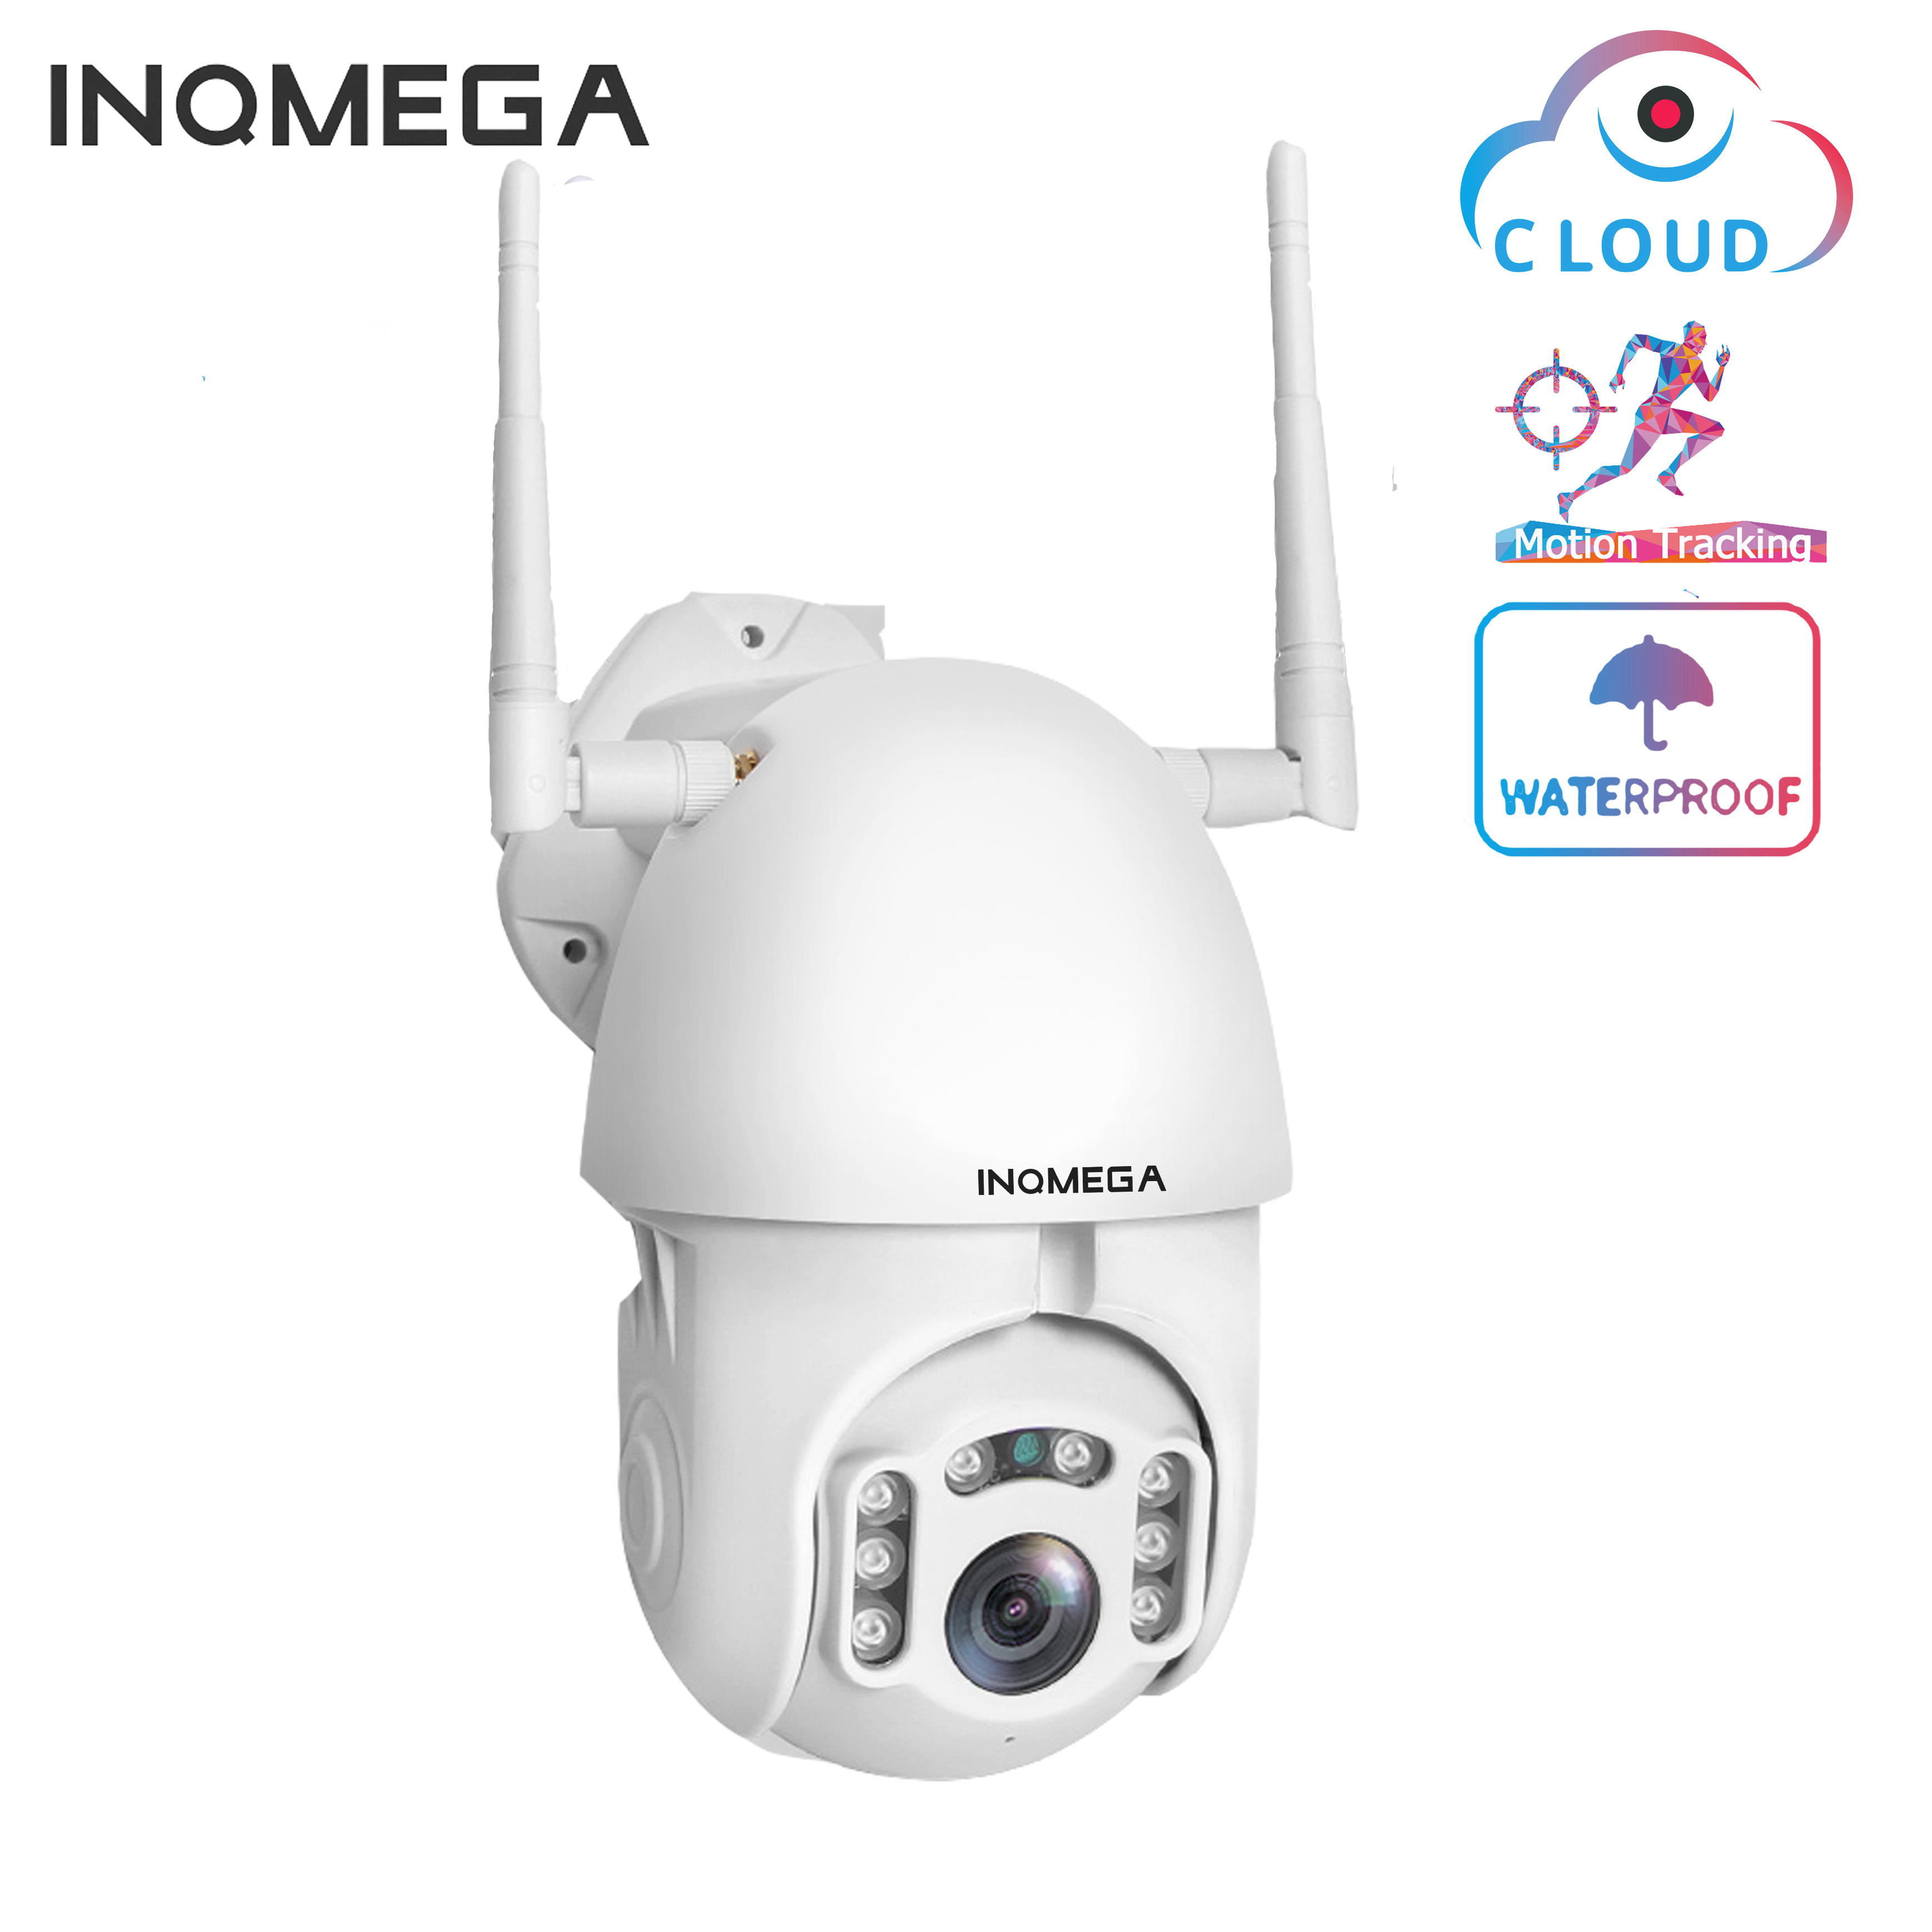 INQMEGA 1080P IP Camera WiFi  Wireless Auto Tracking PTZ Speed Dome Camera Outdoor CCTV Security Surveillance Waterproof Camera